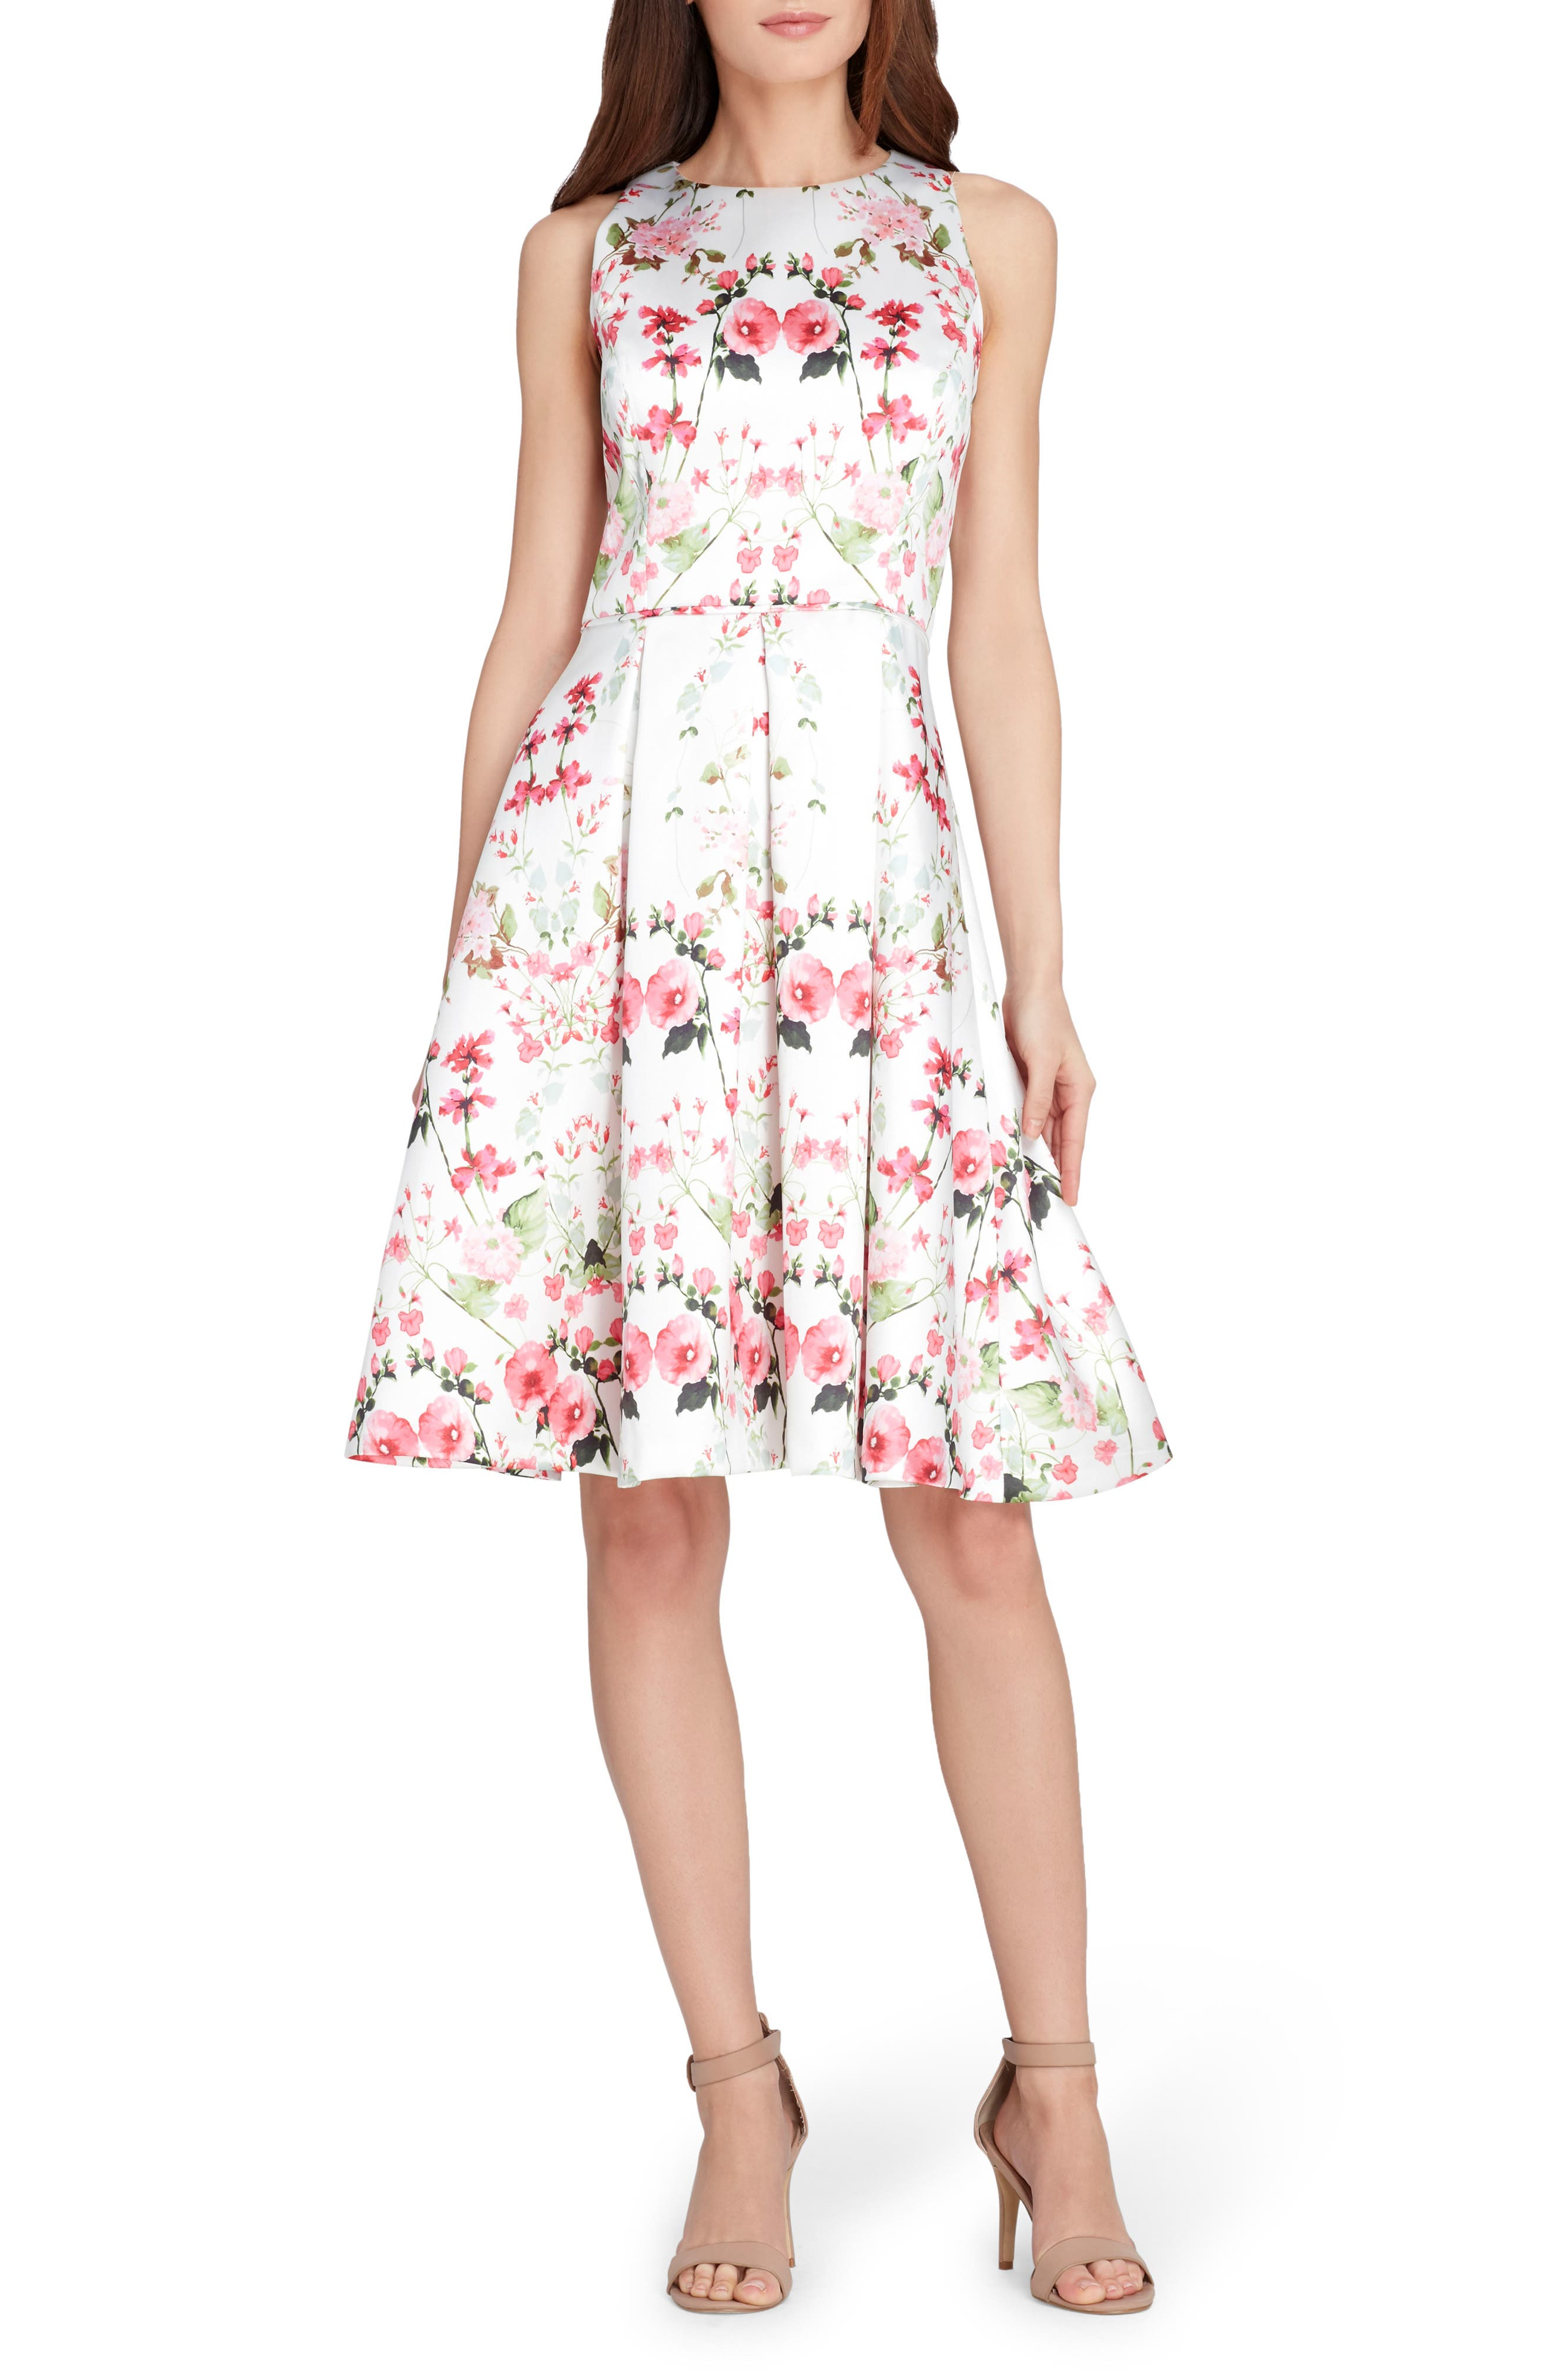 Micado Floral Print Fit & Flare Dress,                         Main,                         color, Ivory/ Fuchsia/ Green